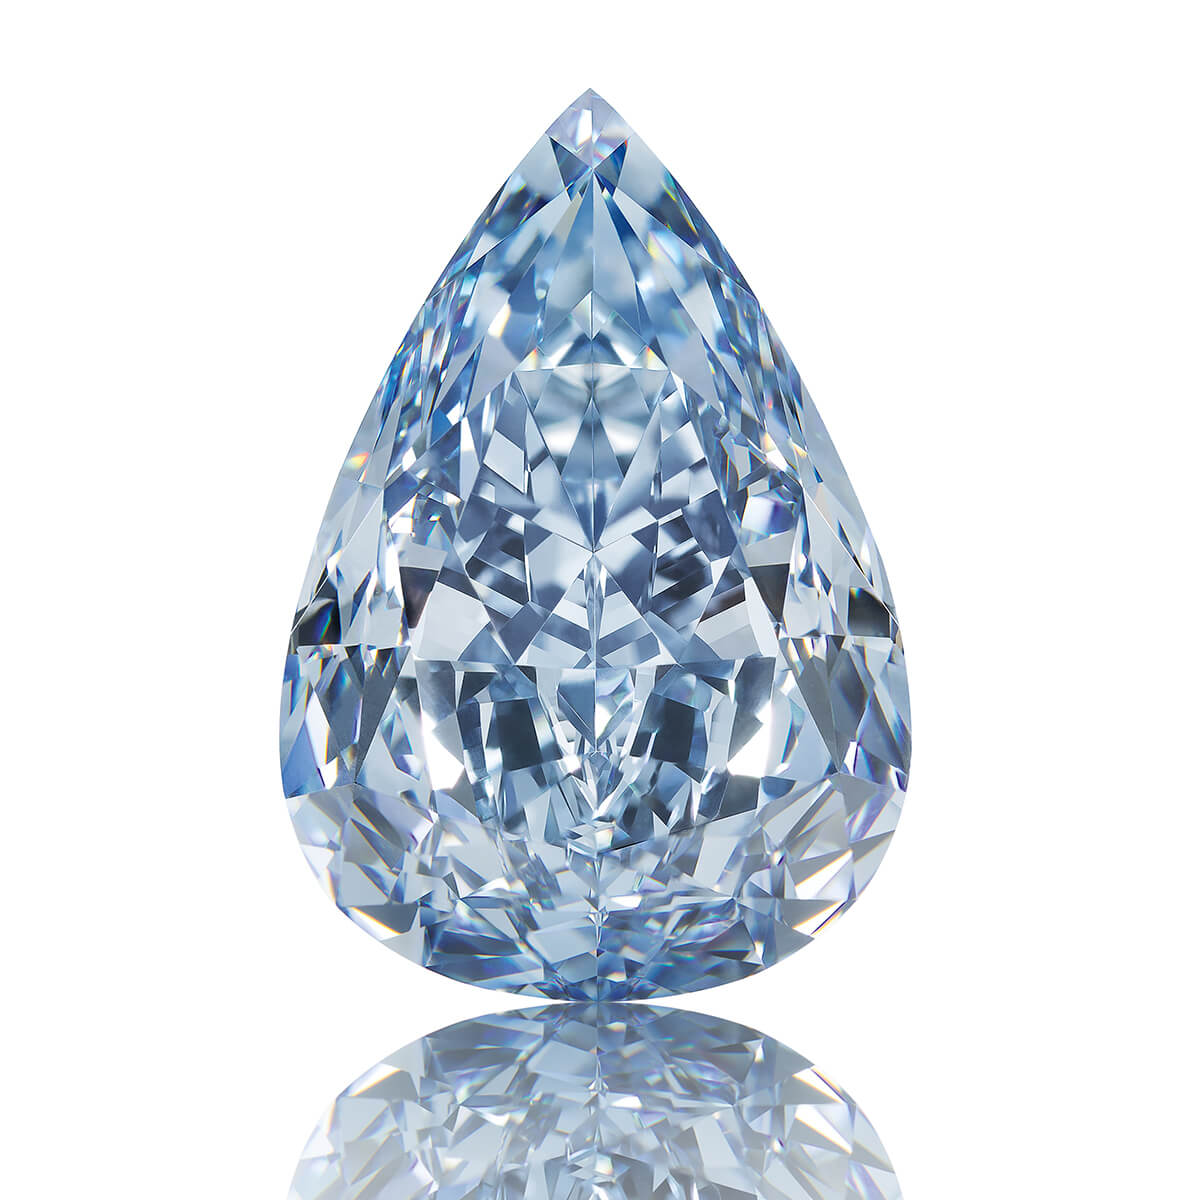 Image of the loose pear-shaped Winston Blue fancy vivid blue diamond